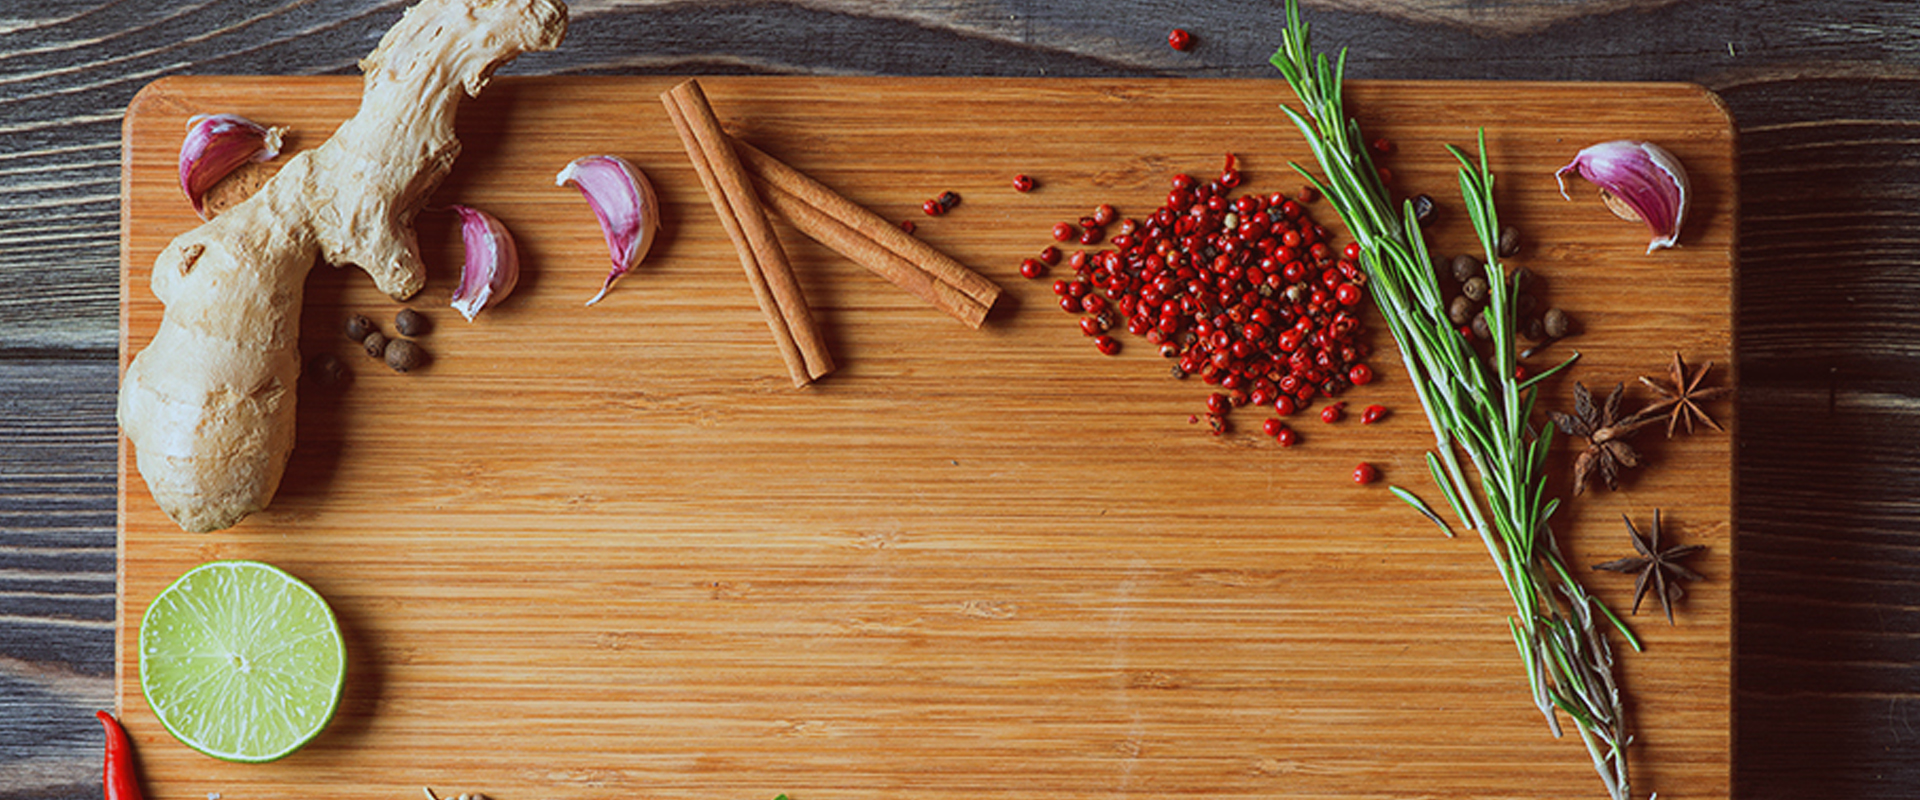 kitchen cutting board background decoration kitchen